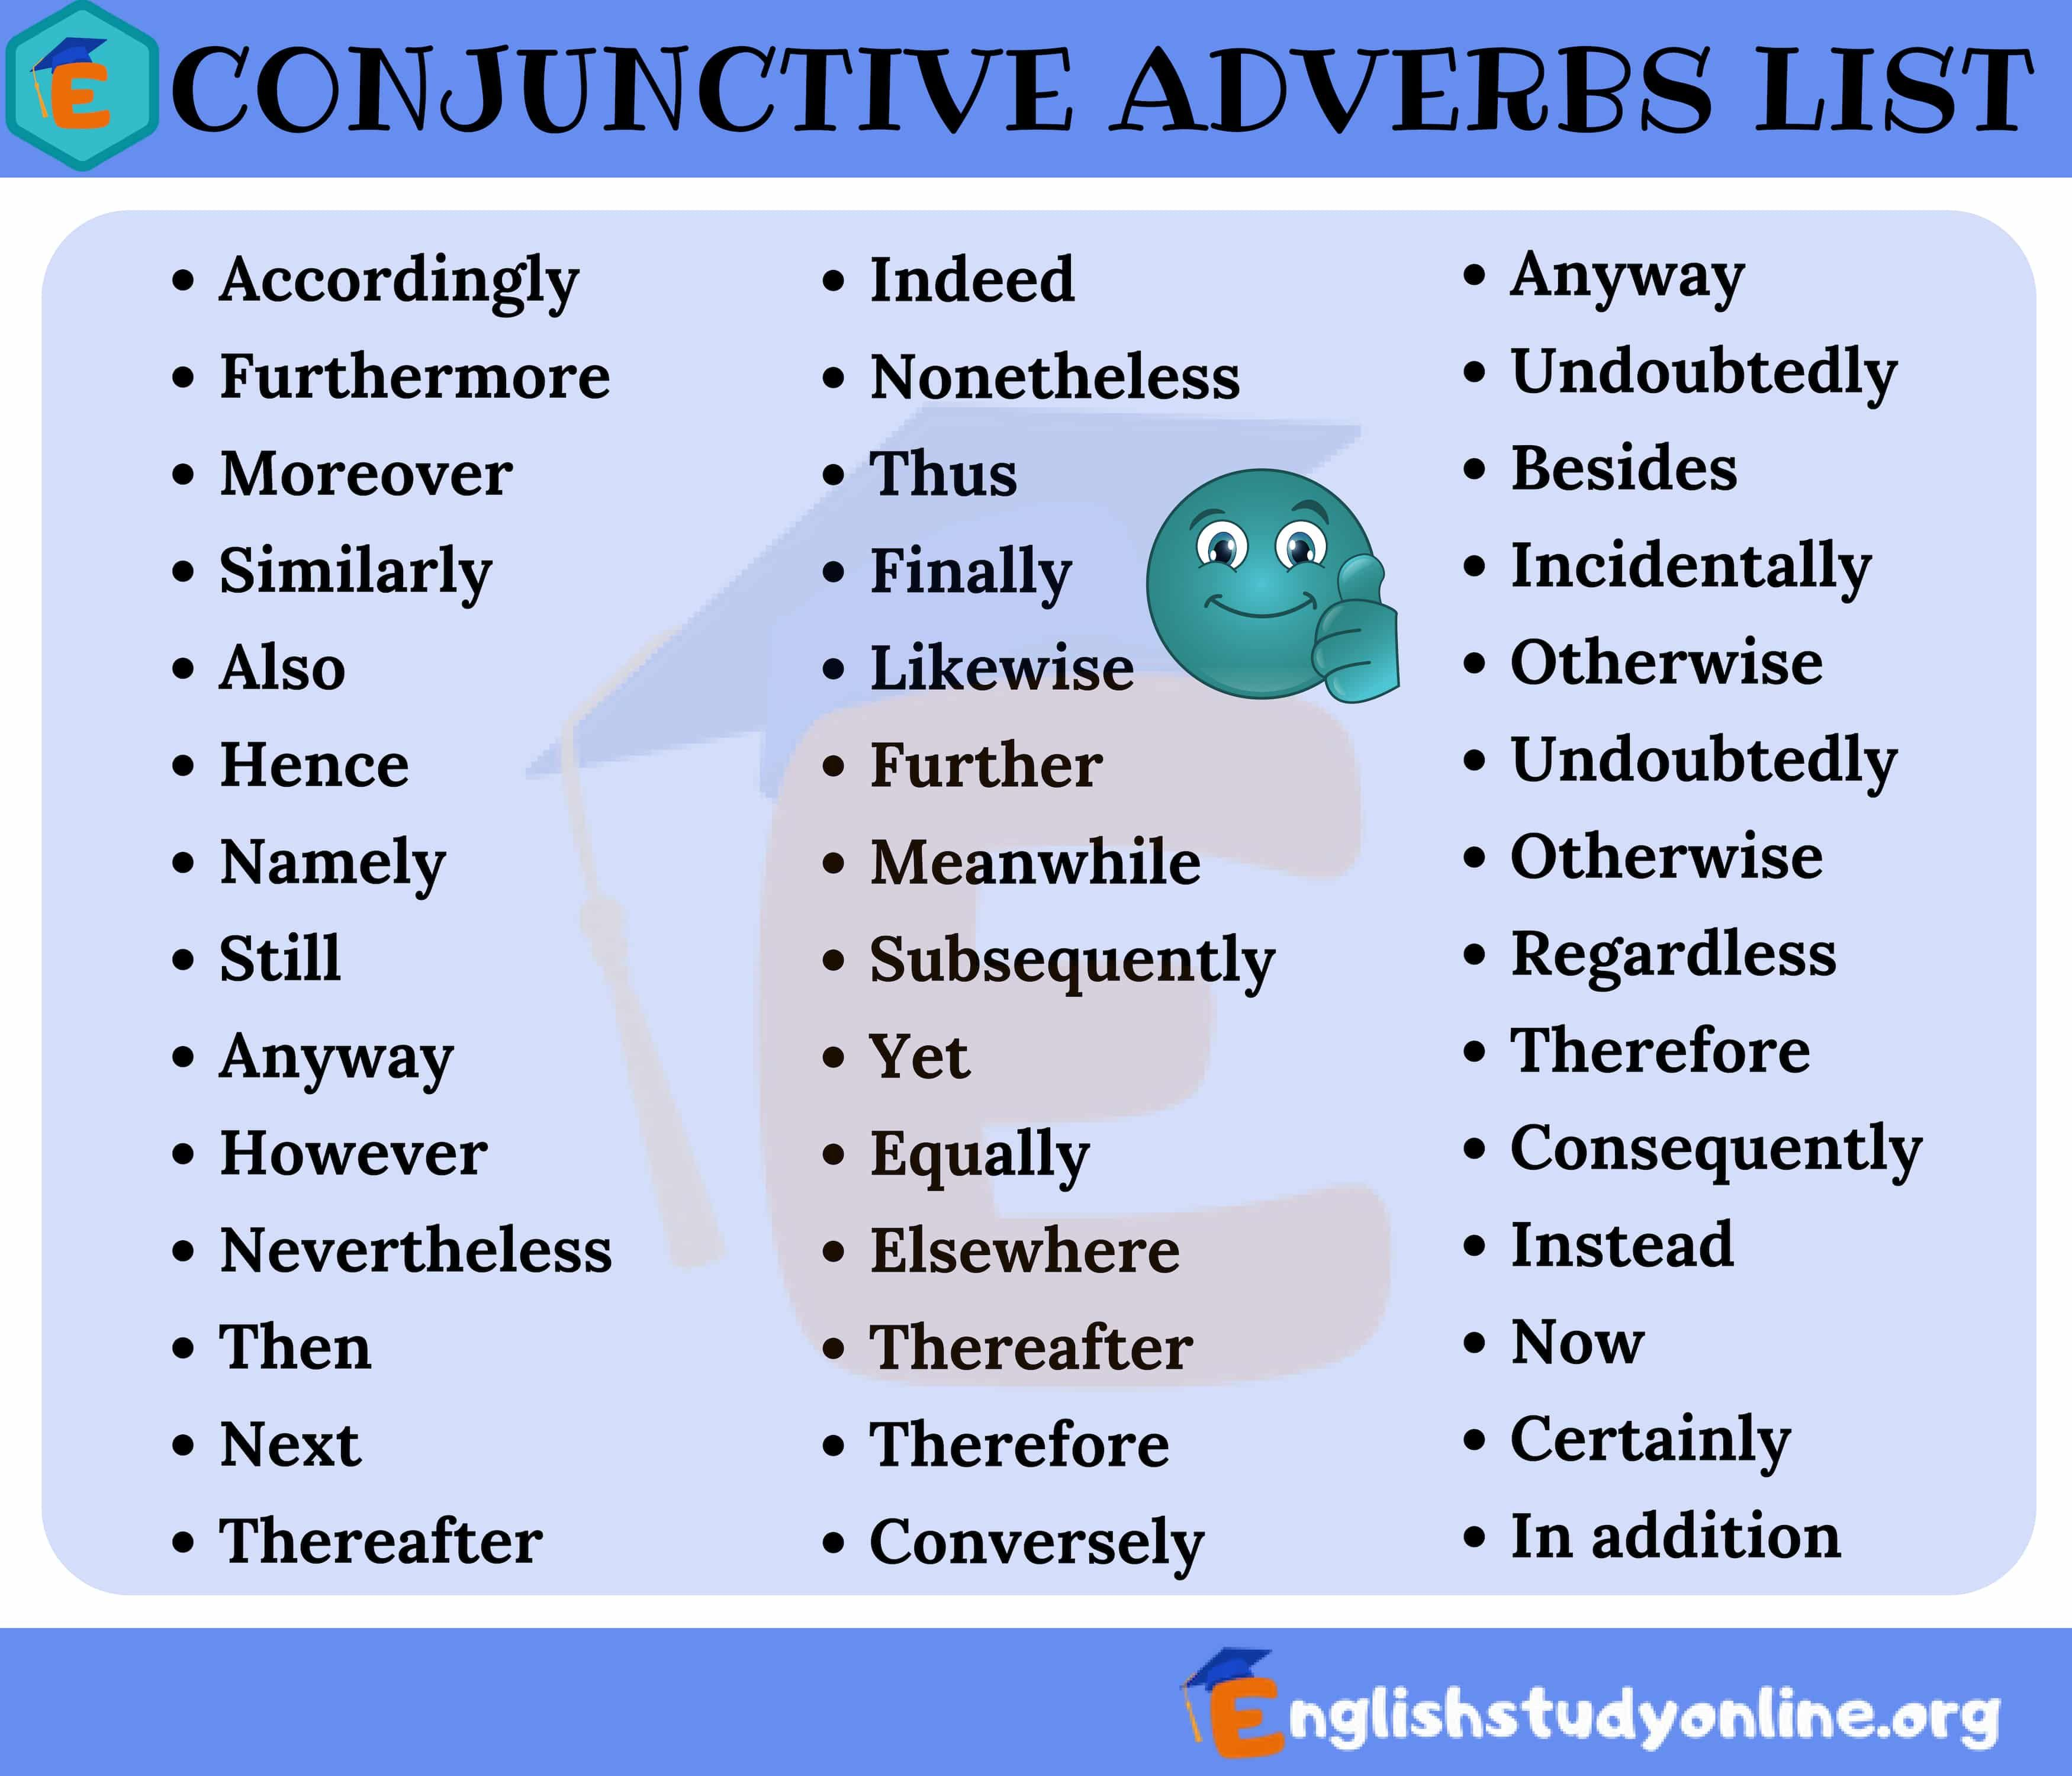 List Of Common Conjunctive Adverbs